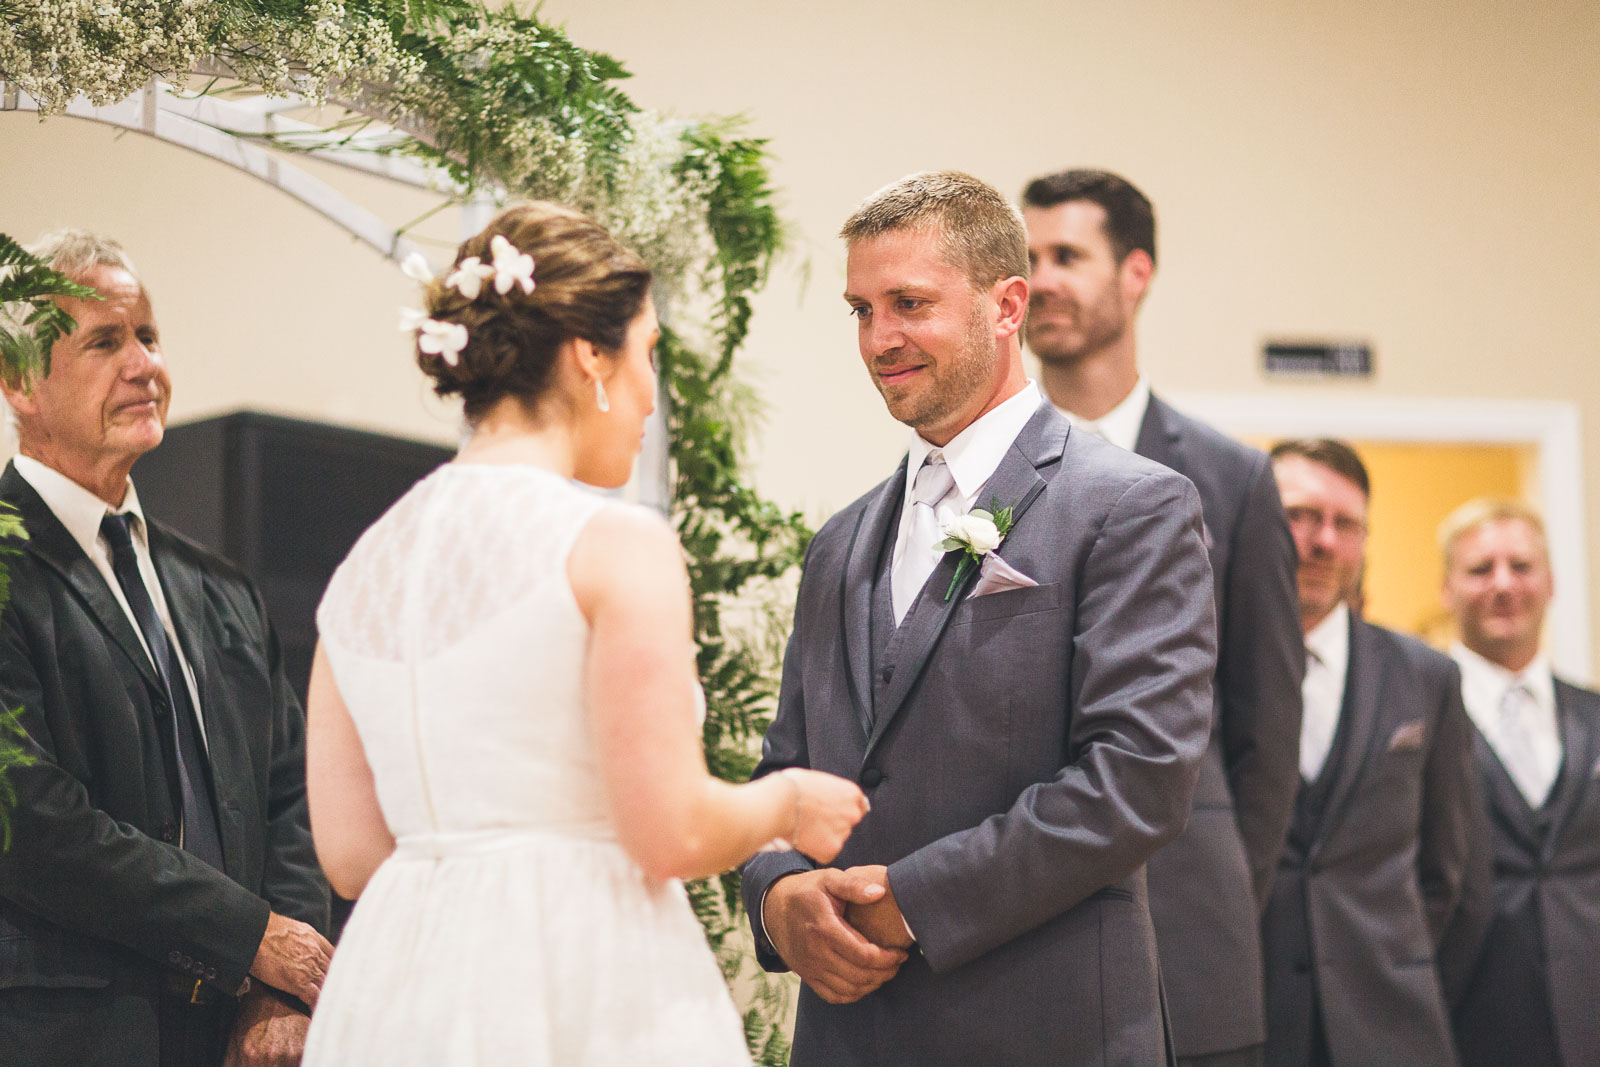 Bride reads vows to groom